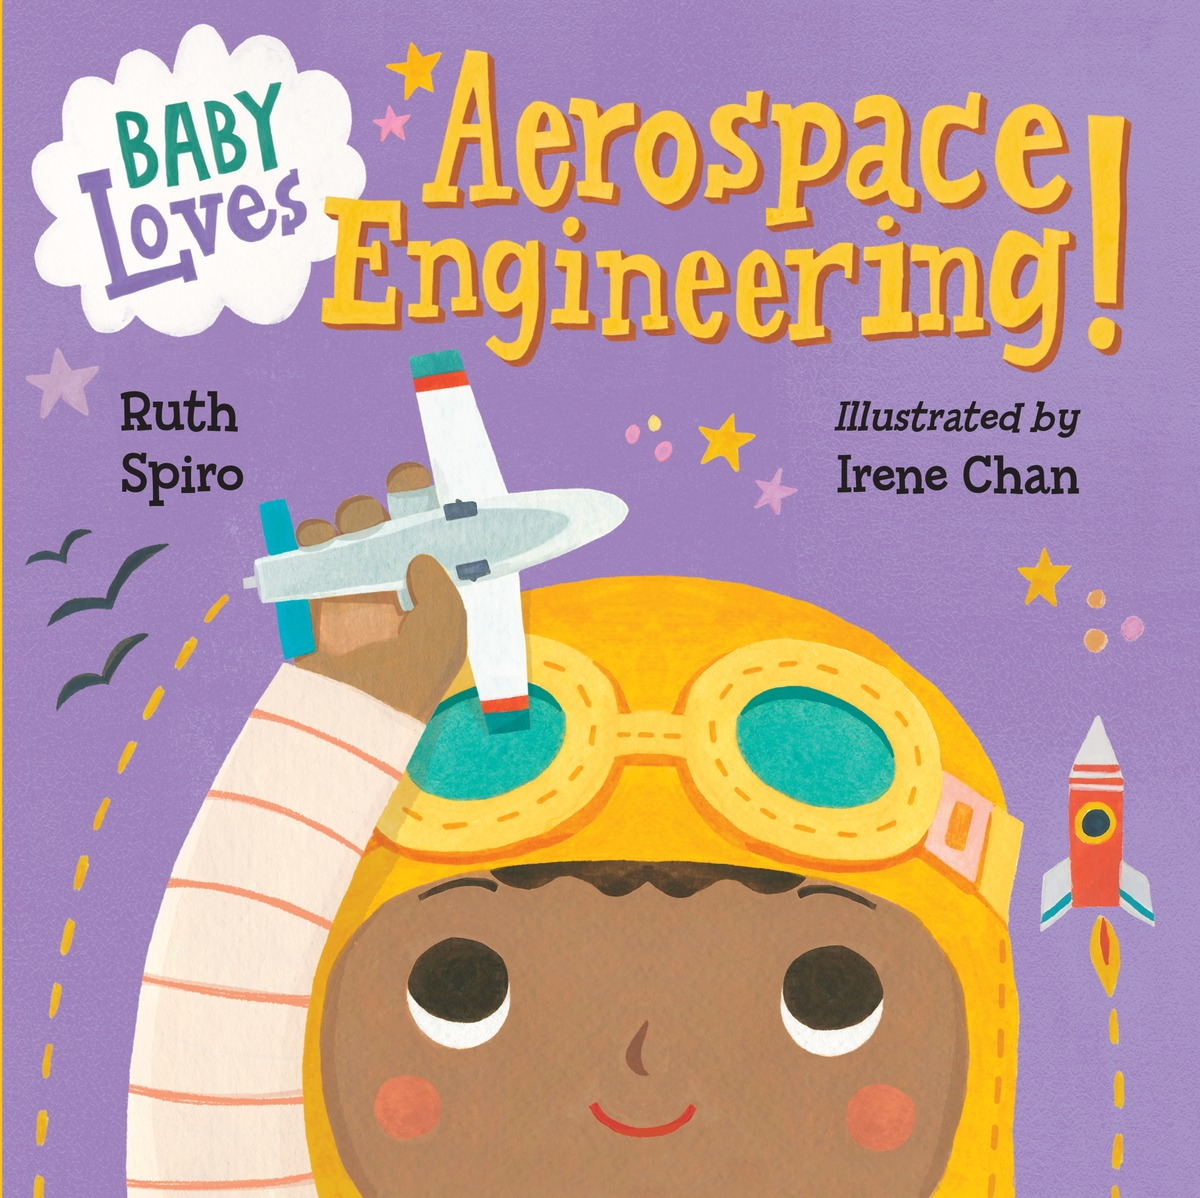 Baby Loves Aerospace Engineering! henk tennekes the simple science of flight – from insects to jumbo jets